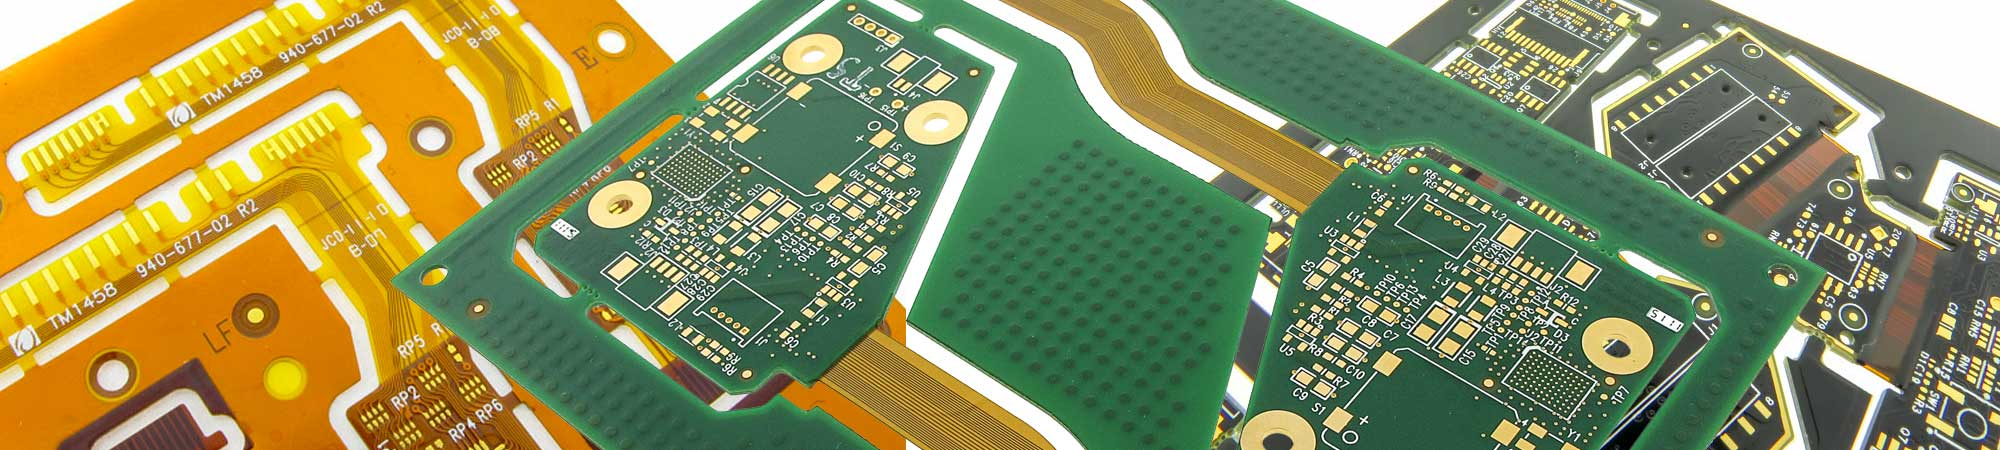 Cost Effective Flex and Rigid-Flex PCB's